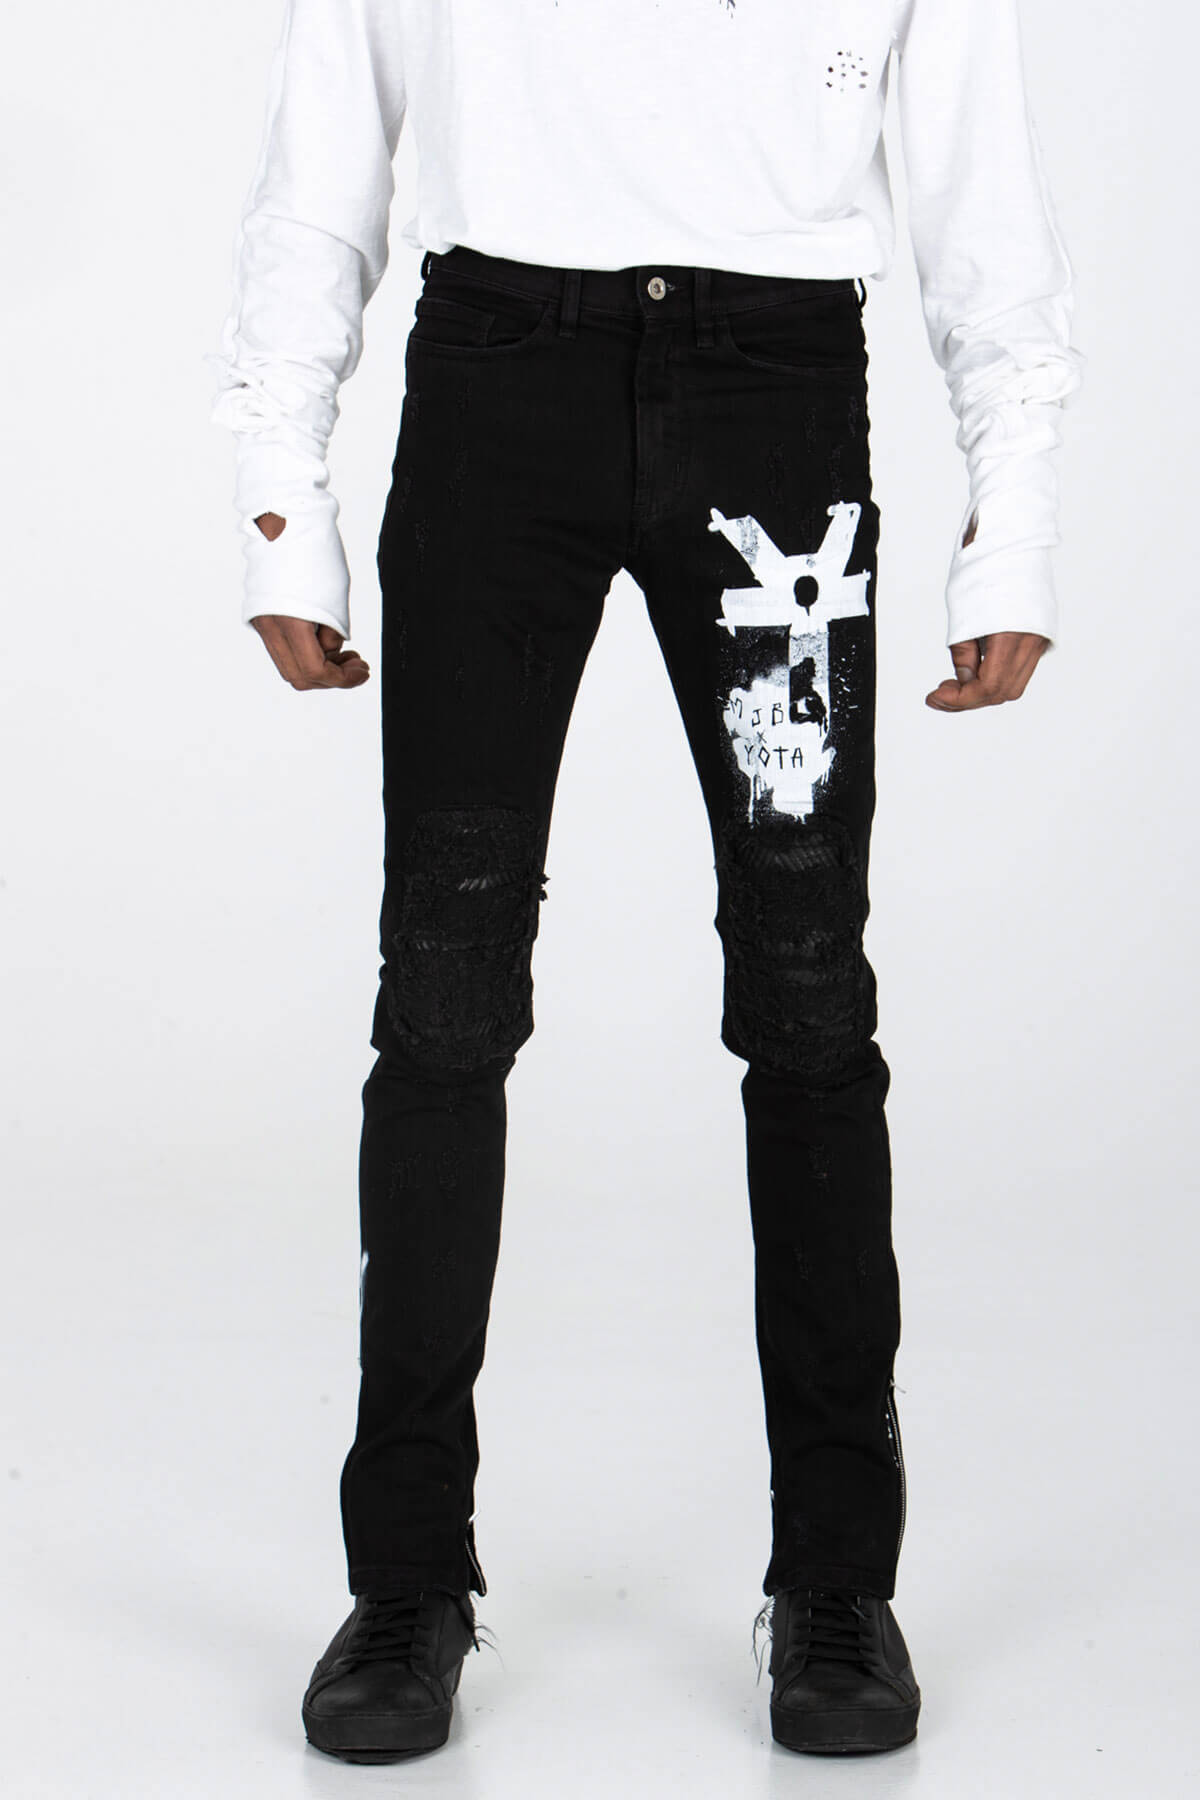 CRIXUS JEANS – YOTA (LIMITED EDITION) - BOTTOM - MJB